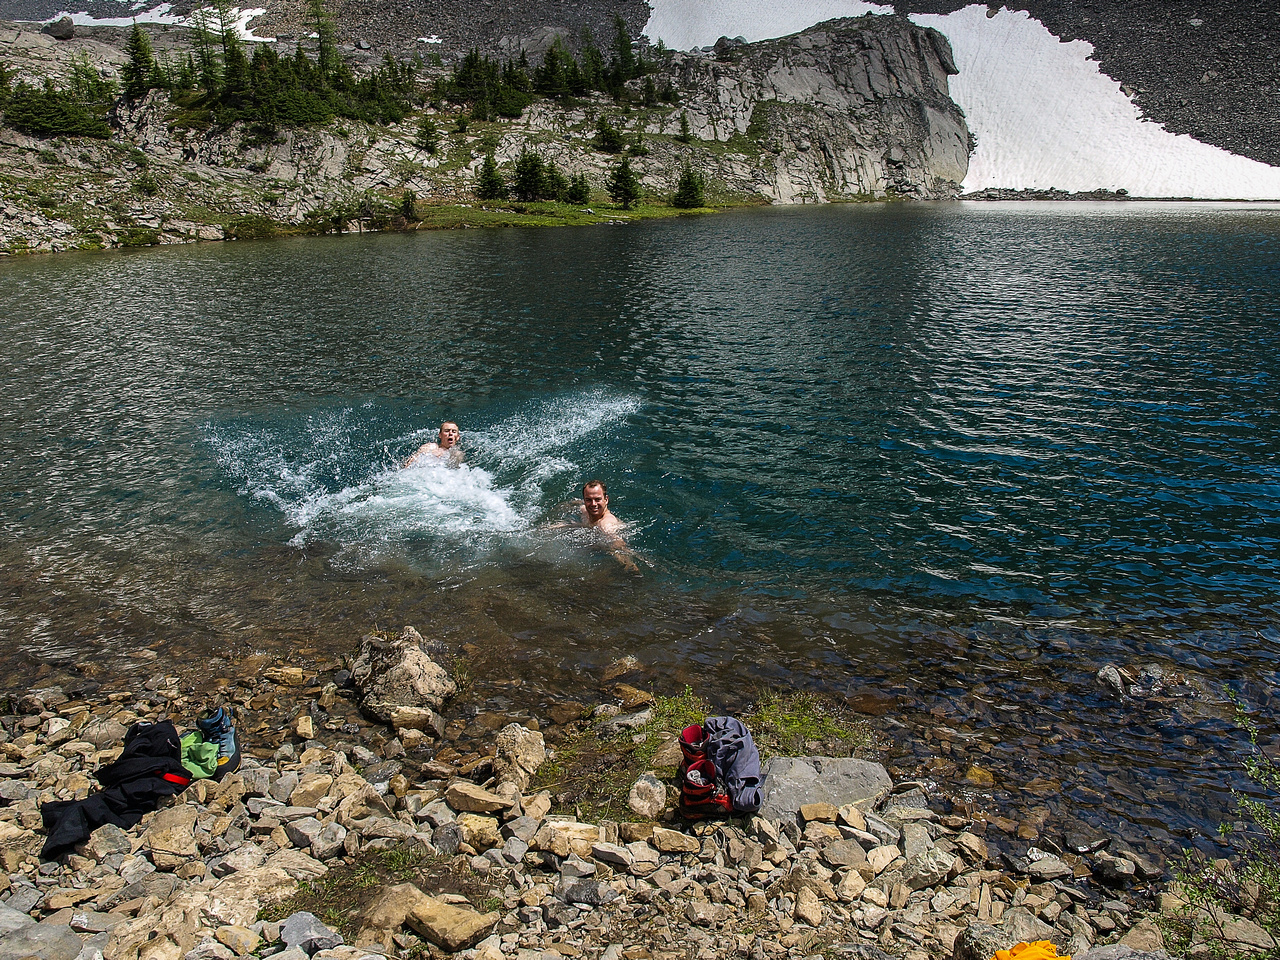 Delightful swim in a COLD tarn on the way back.